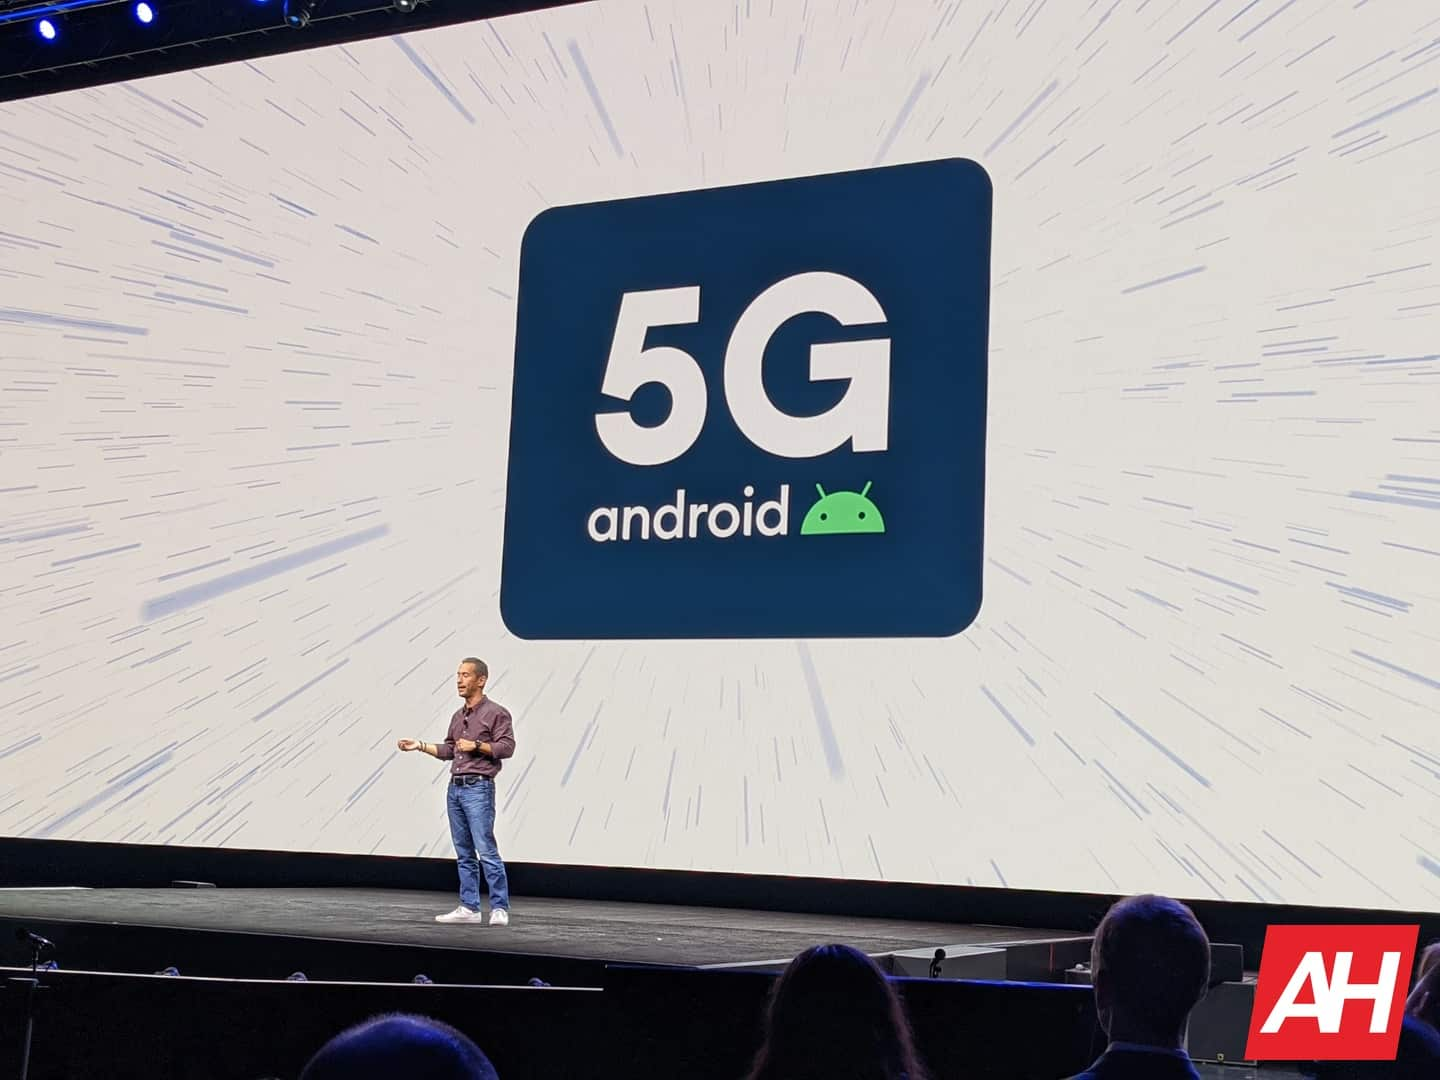 AH Android 5G image 1